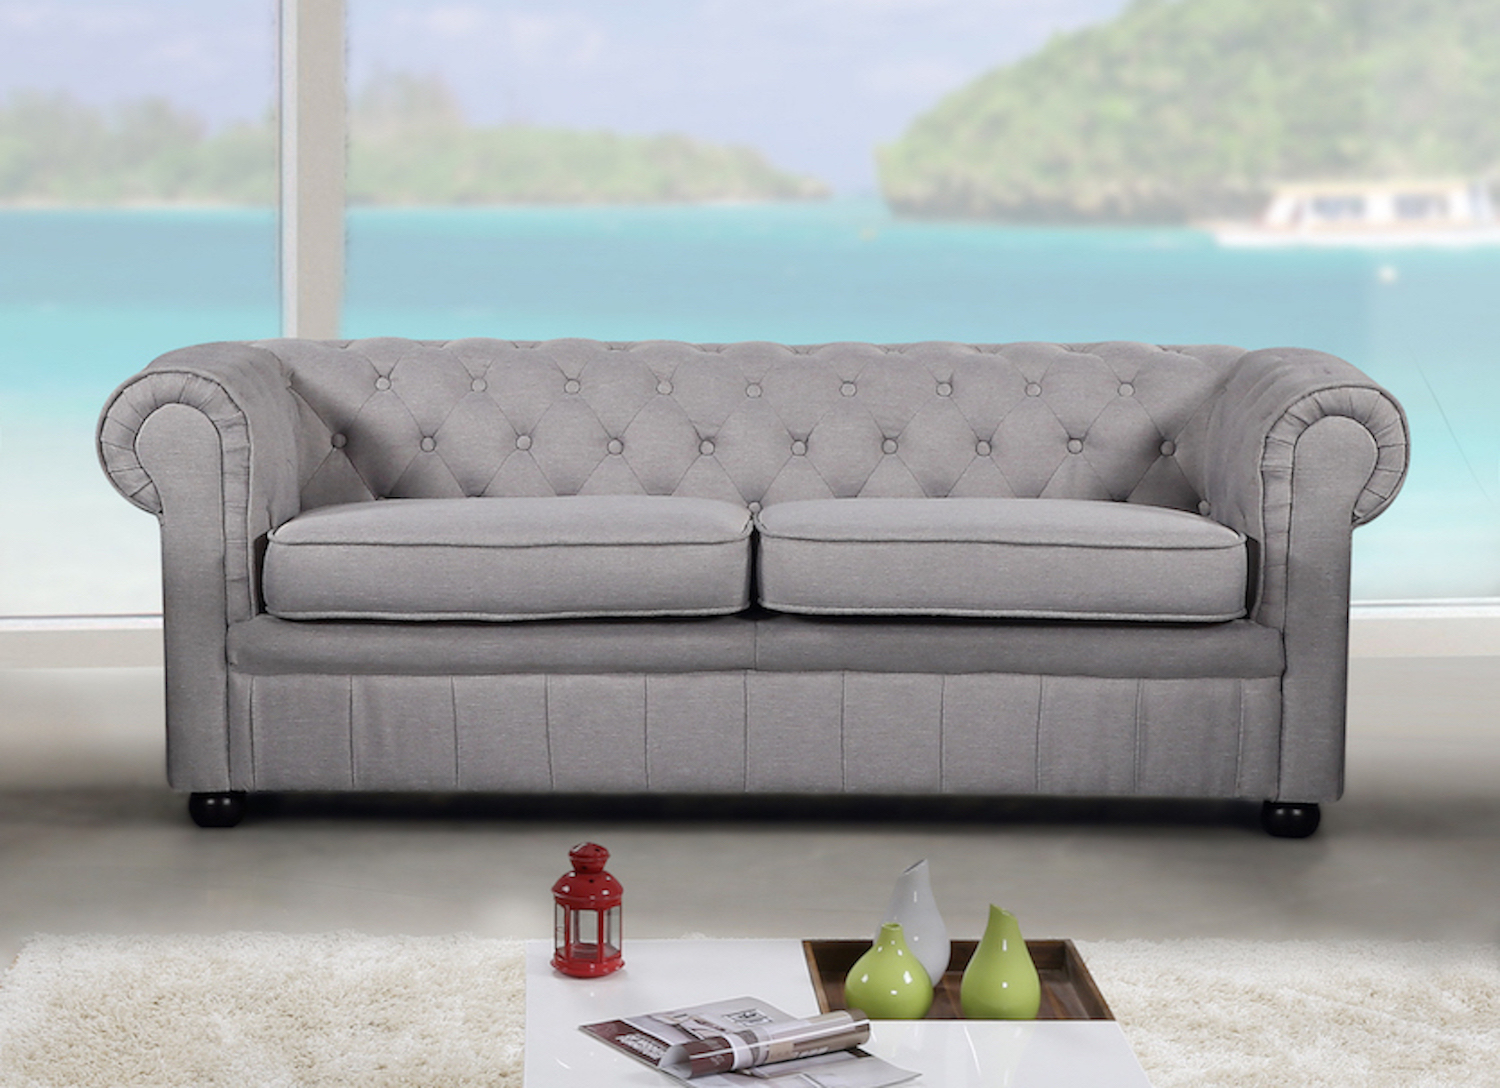 modern chesterfield style sofa light grey fabric. Black Bedroom Furniture Sets. Home Design Ideas